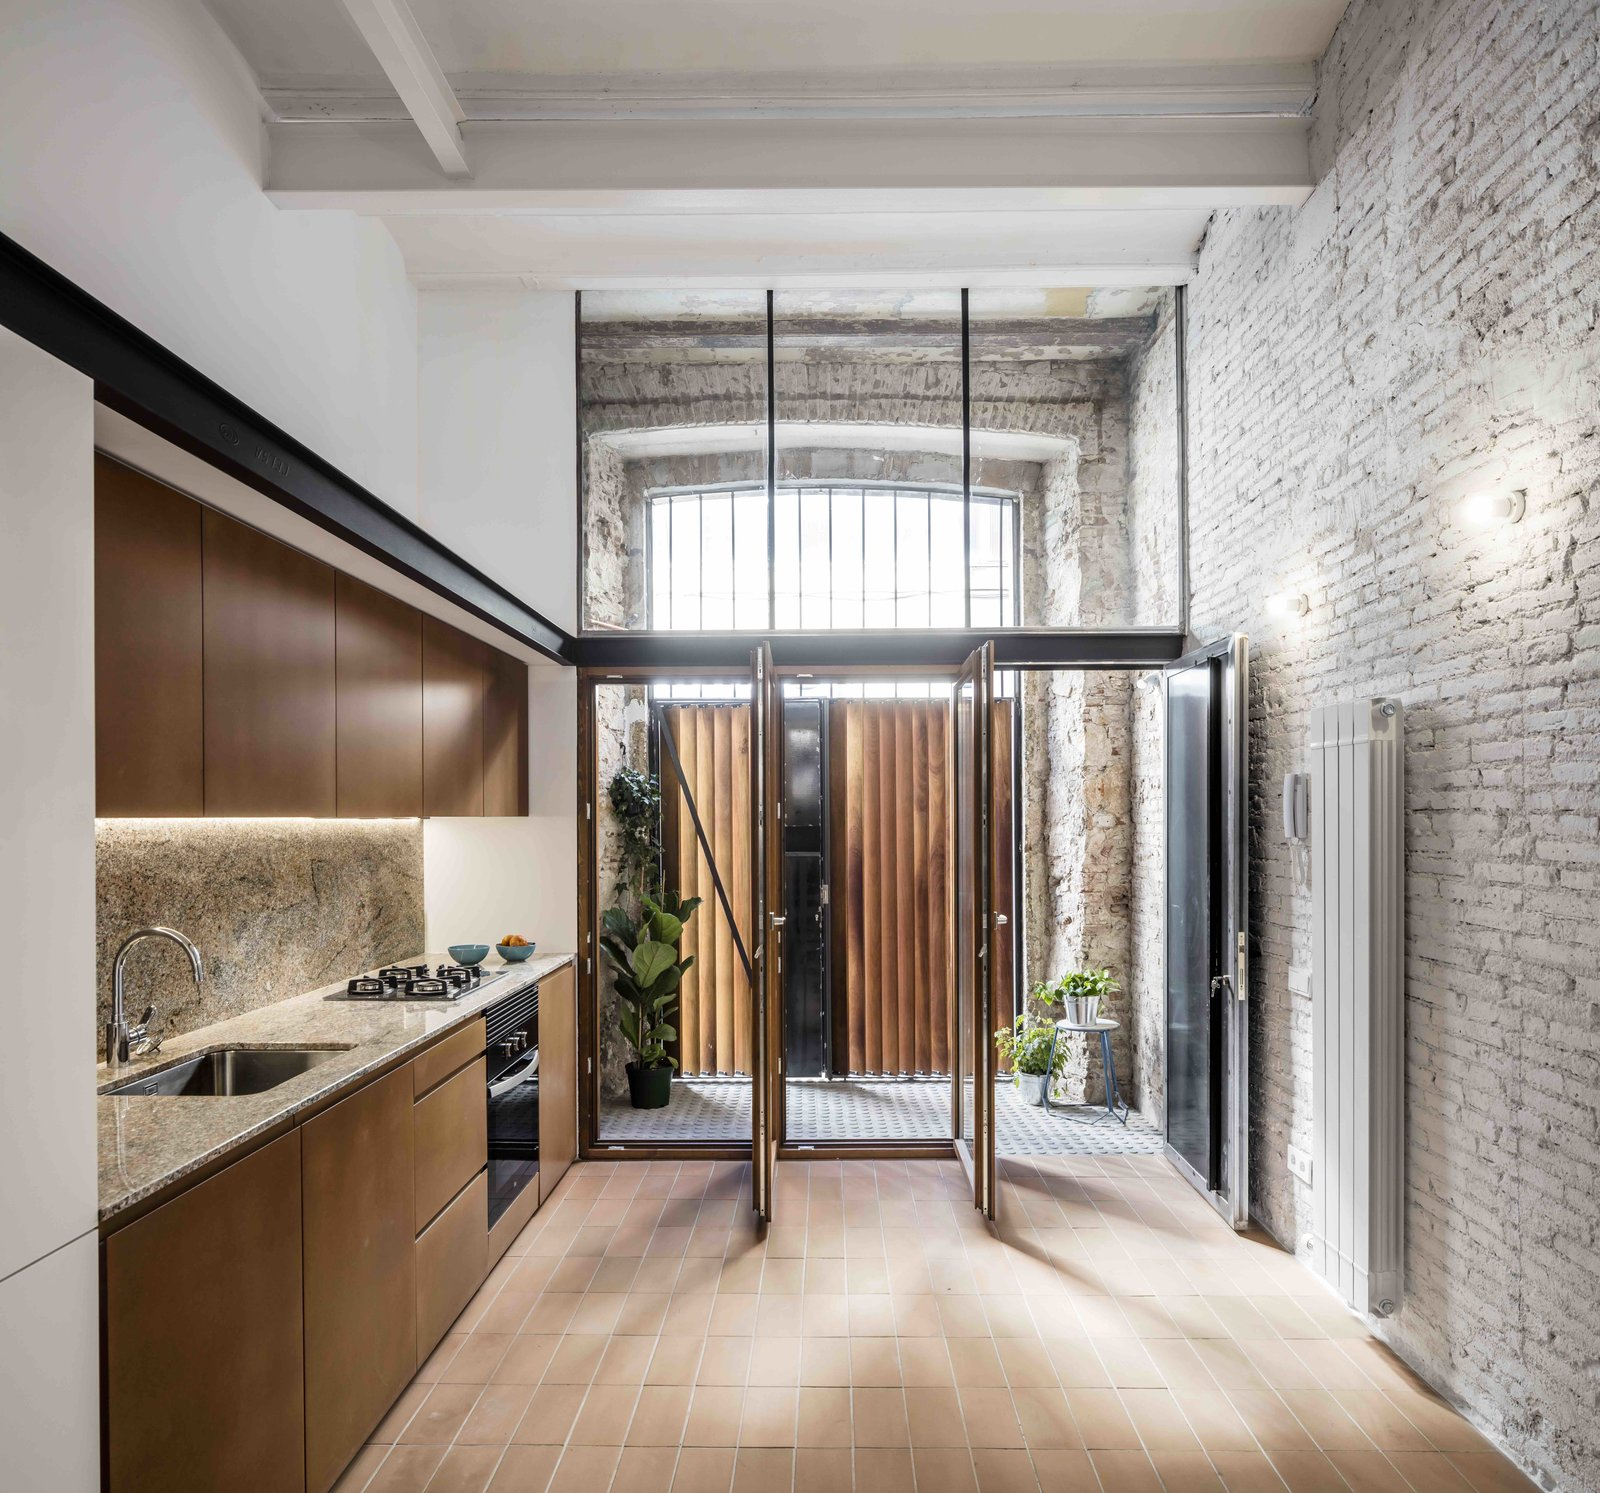 Tagged: Kitchen, Porcelain Tile Floor, Granite Counter, Wall Oven, Range, Accent Lighting, Wall Lighting, and Undermount Sink. This Double-Height Apartment in   Barcelona Features Historic Details and a Floating Staircase - Photo 5 of 13